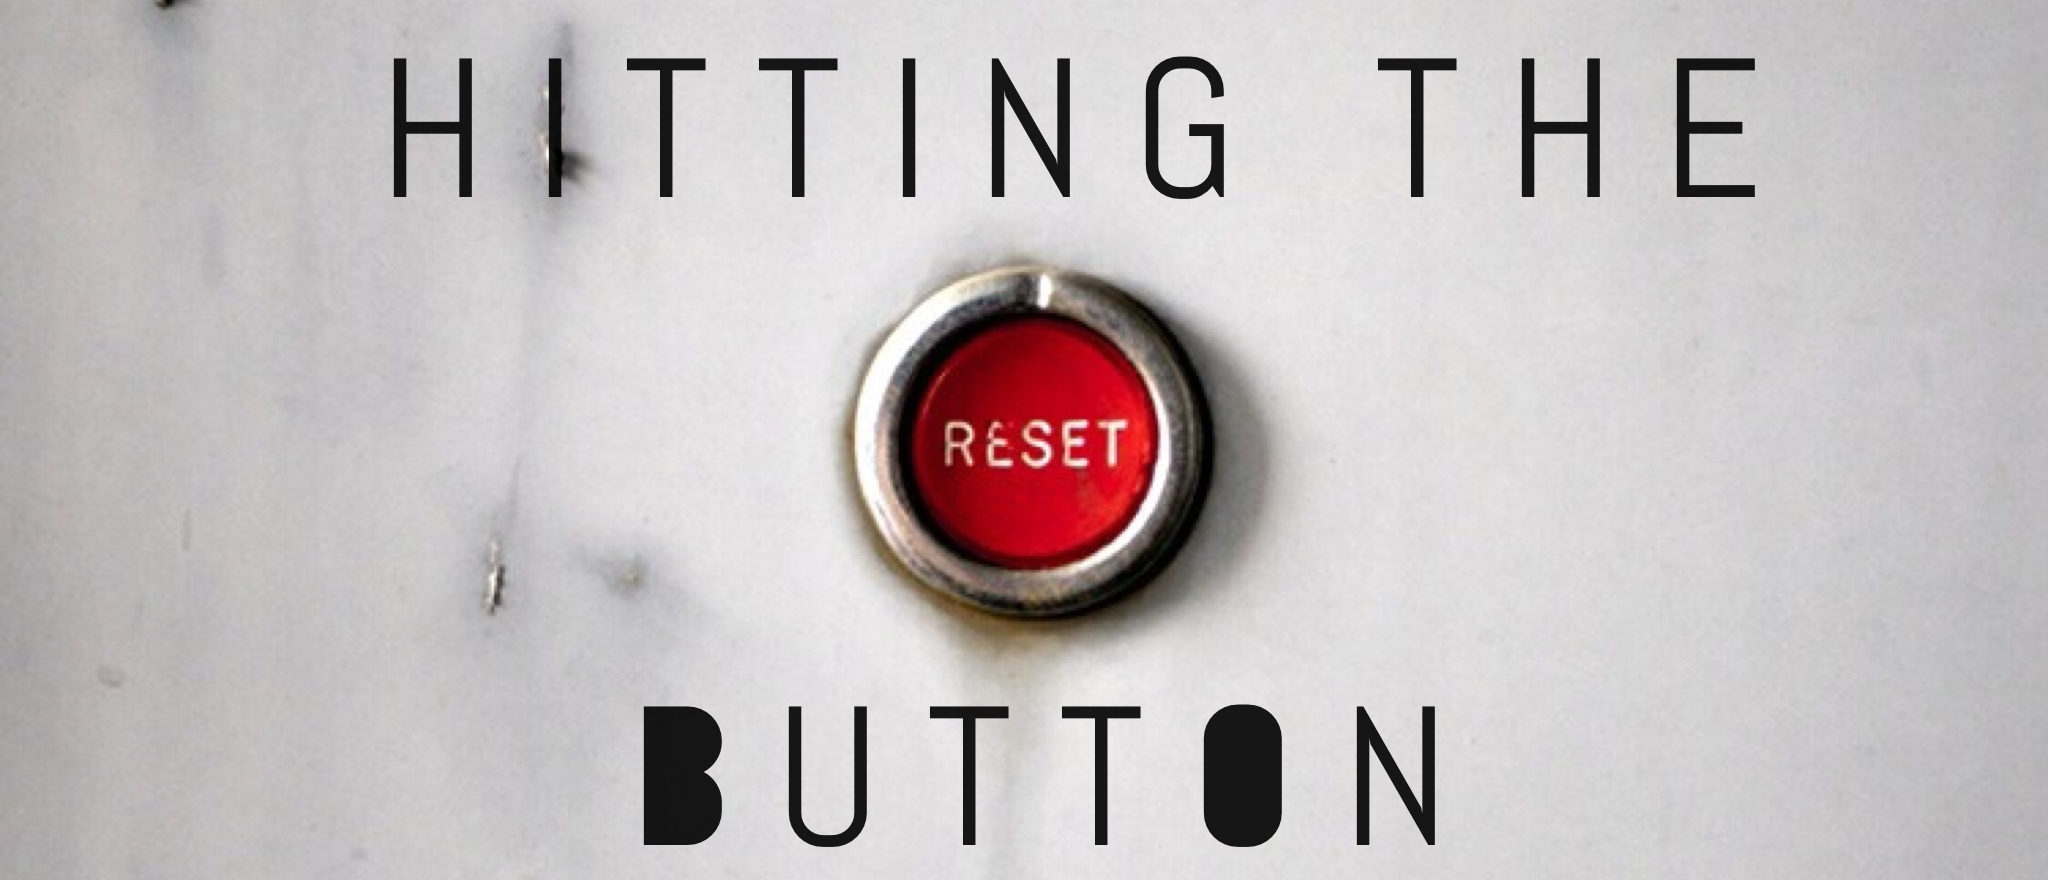 Ep 085: Time to hit the RESET button, with Special Guest, Melanie Juedes